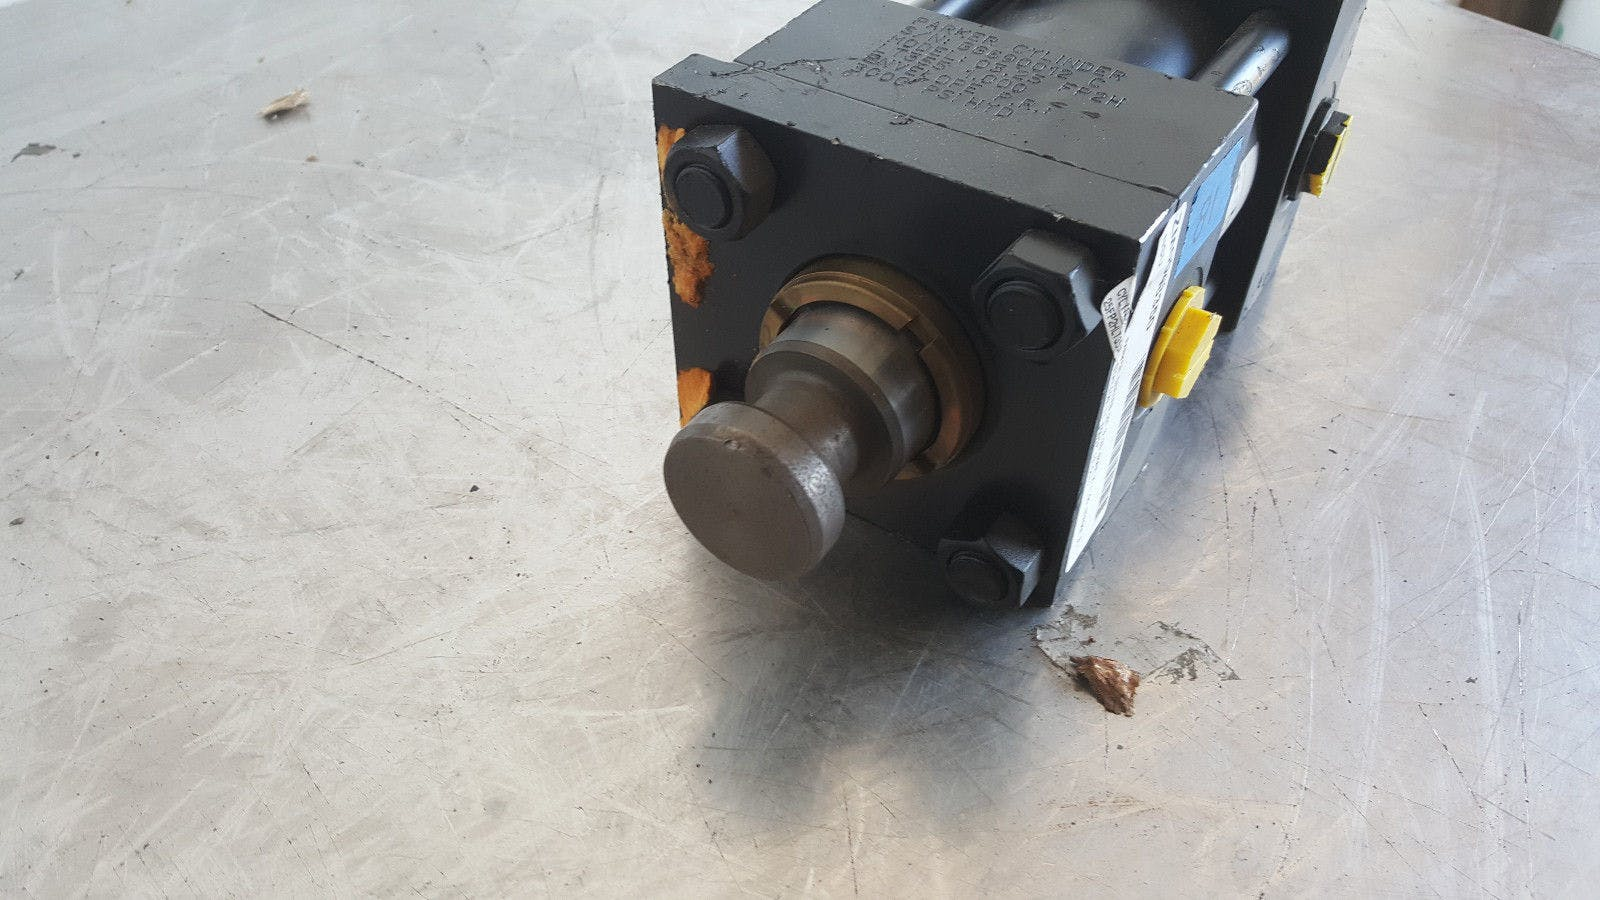 Parker Series 2H 03.25 FP2HLT355 1.000 3000 Psi Hyd Hydraulic Cylinder New - sold by Jak's Restaurant Supply